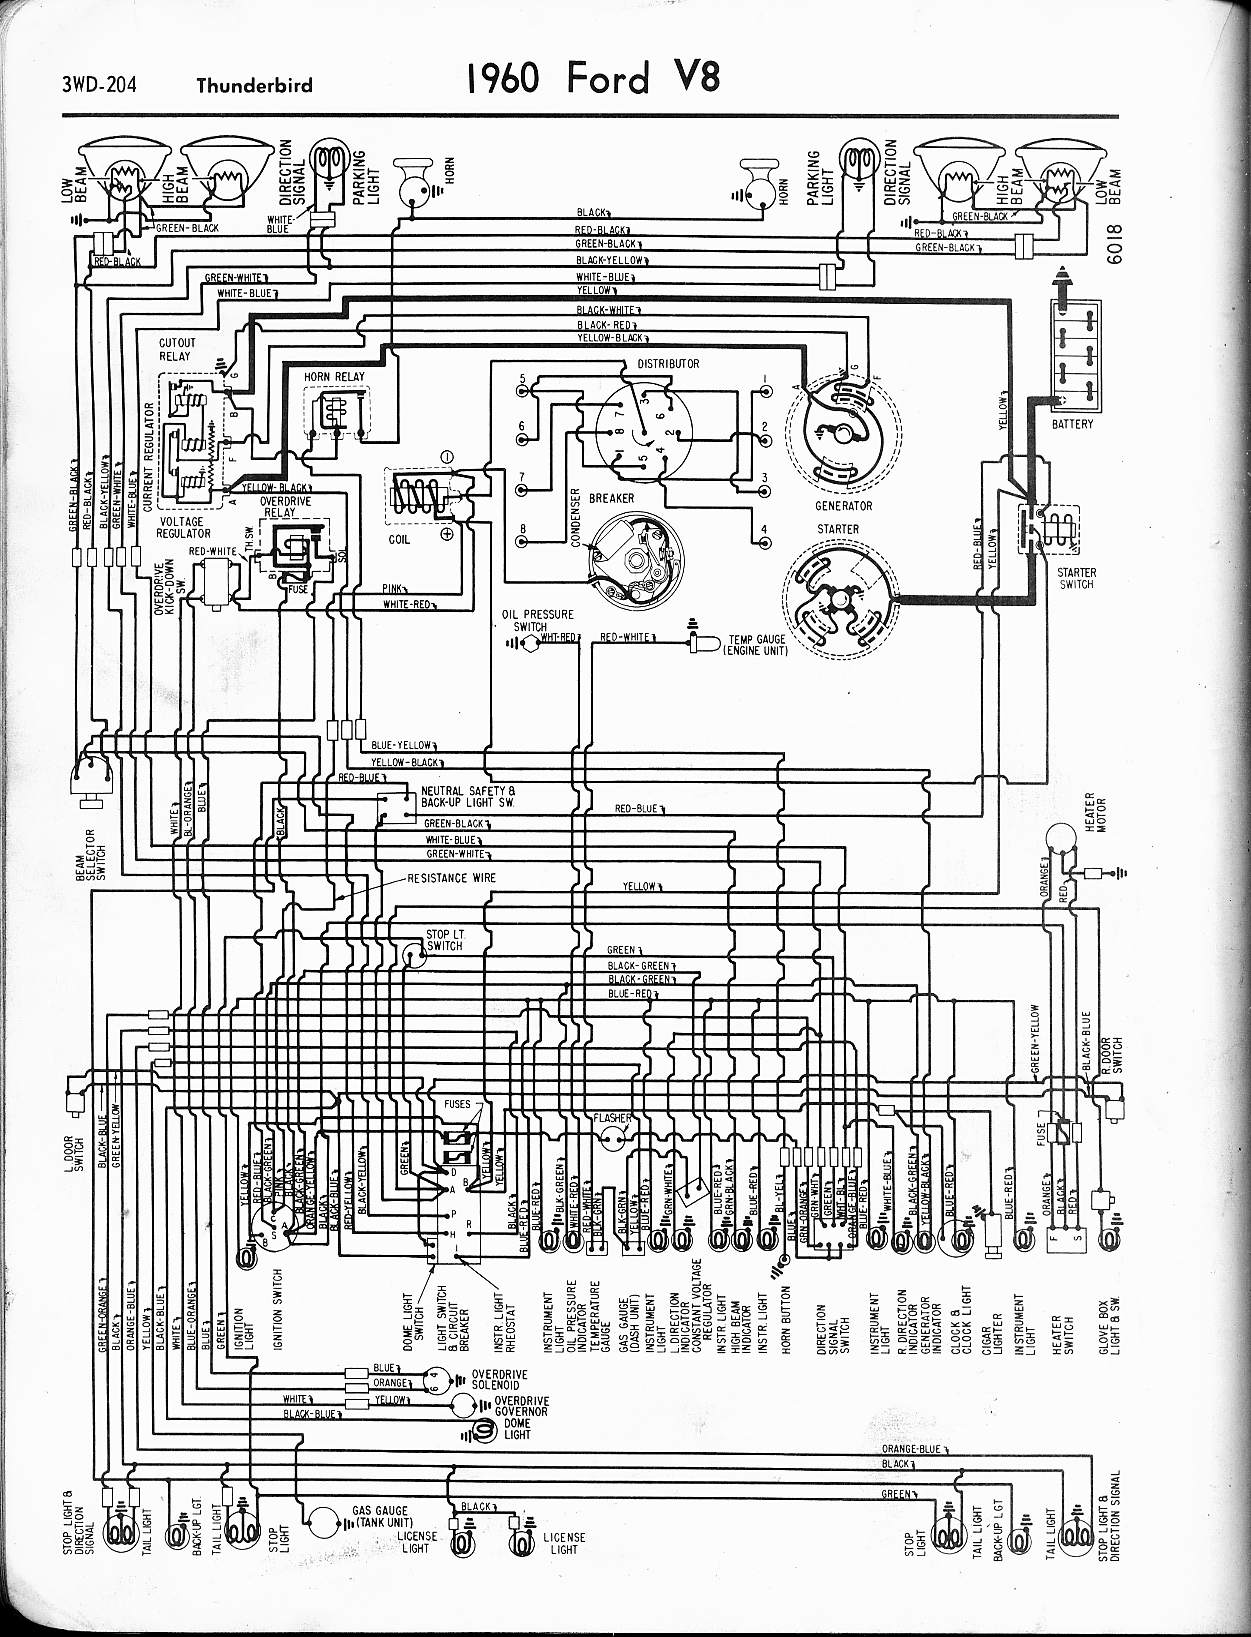 MWire5765 204 1964 1966 thunderbirfd wiring schematic 66 mustang wiring diagram 1966 ford fairlane wiring diagram at mifinder.co